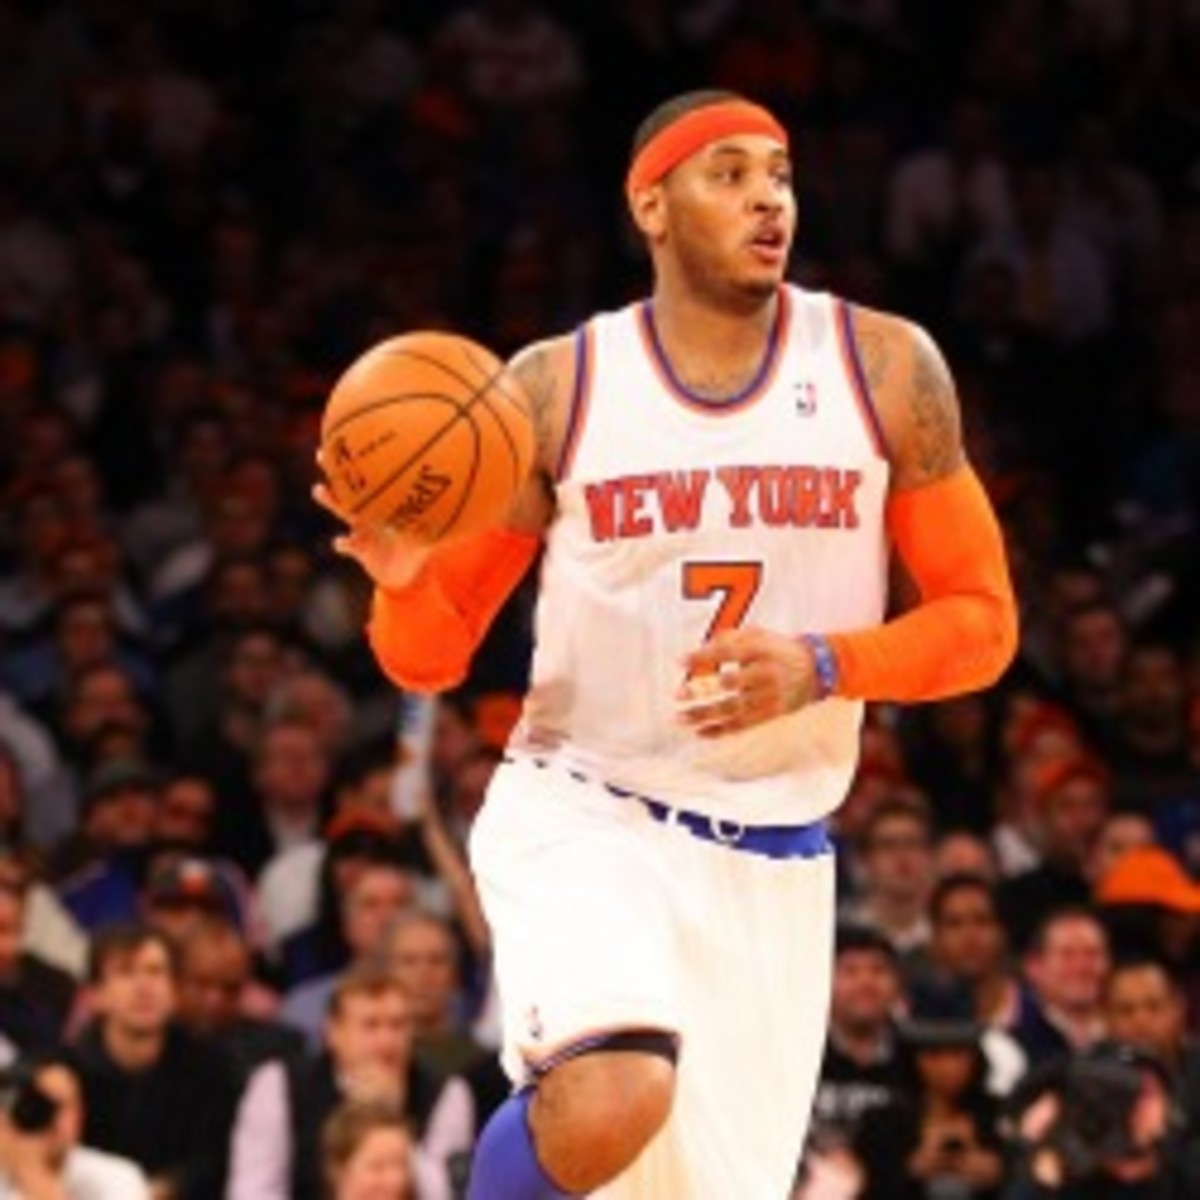 Knicks forward Carmelo Anthony expects his team to get to at least the Eastern Conference Finals. (Al Bello/Getty Images)